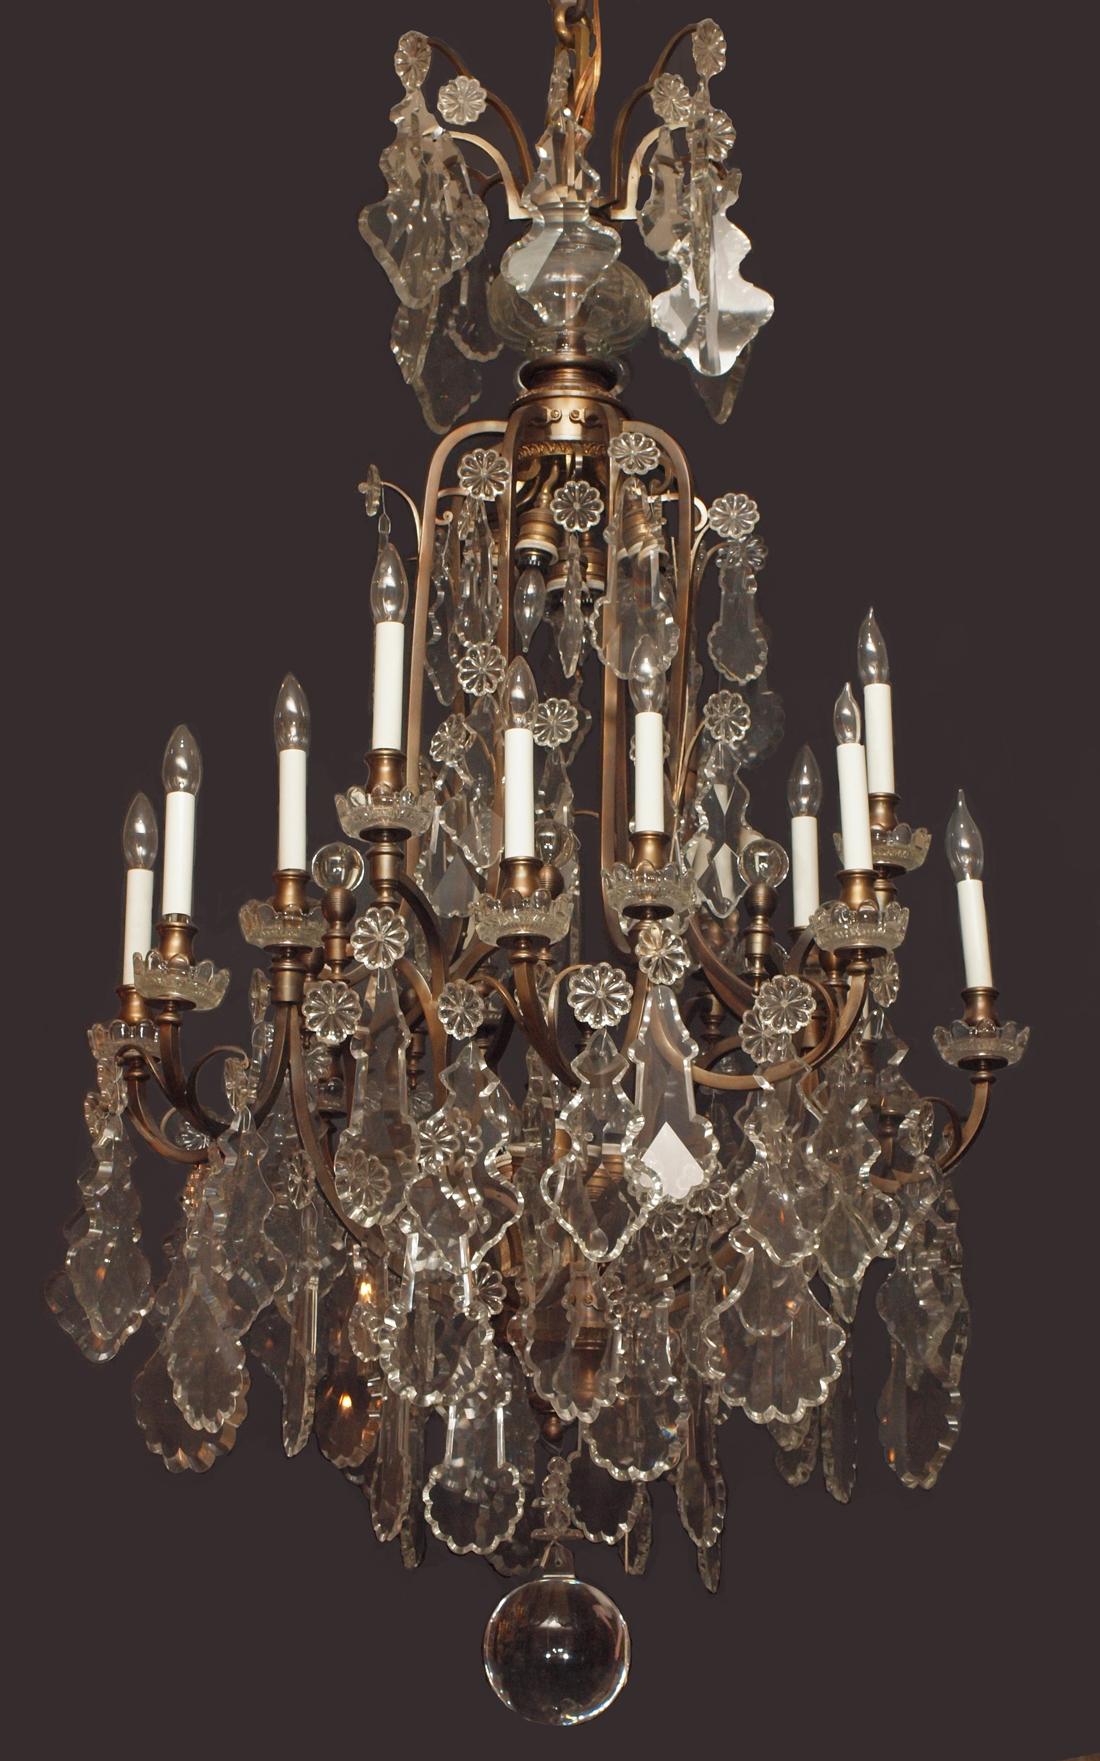 Chandeliers Antiques Chandeliers And French With Antique French Chandeliers (Image 9 of 15)